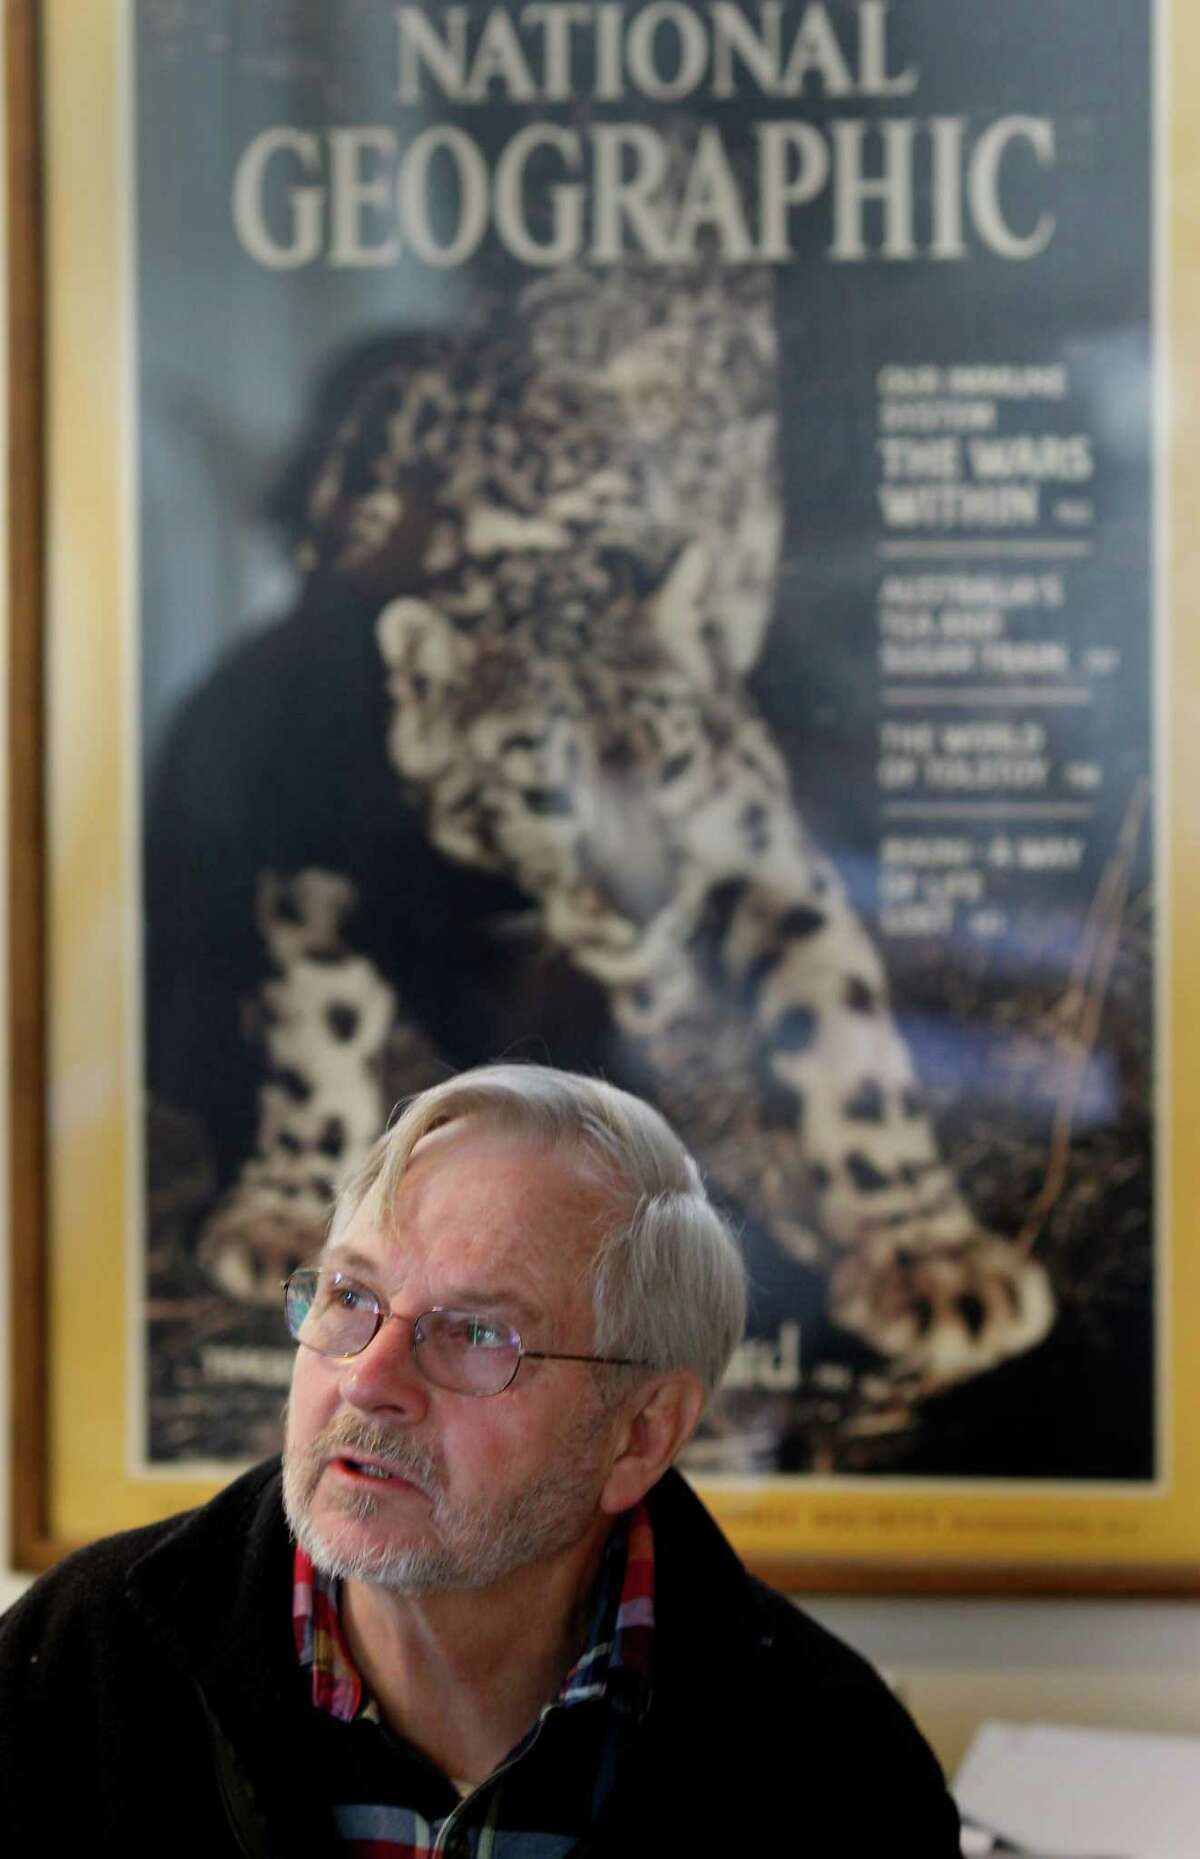 Rodney Jackson in his office with a large blowup of a 1986 National Geographic story with his photo of a snow leopard. Jackson, the world's foremost expert on snow leopards, uses remote camera traps to record the elusive cats in Asia. He uses the same technology near his Sonoma home to watch for mountain lions, bobcats, fox and other animals.